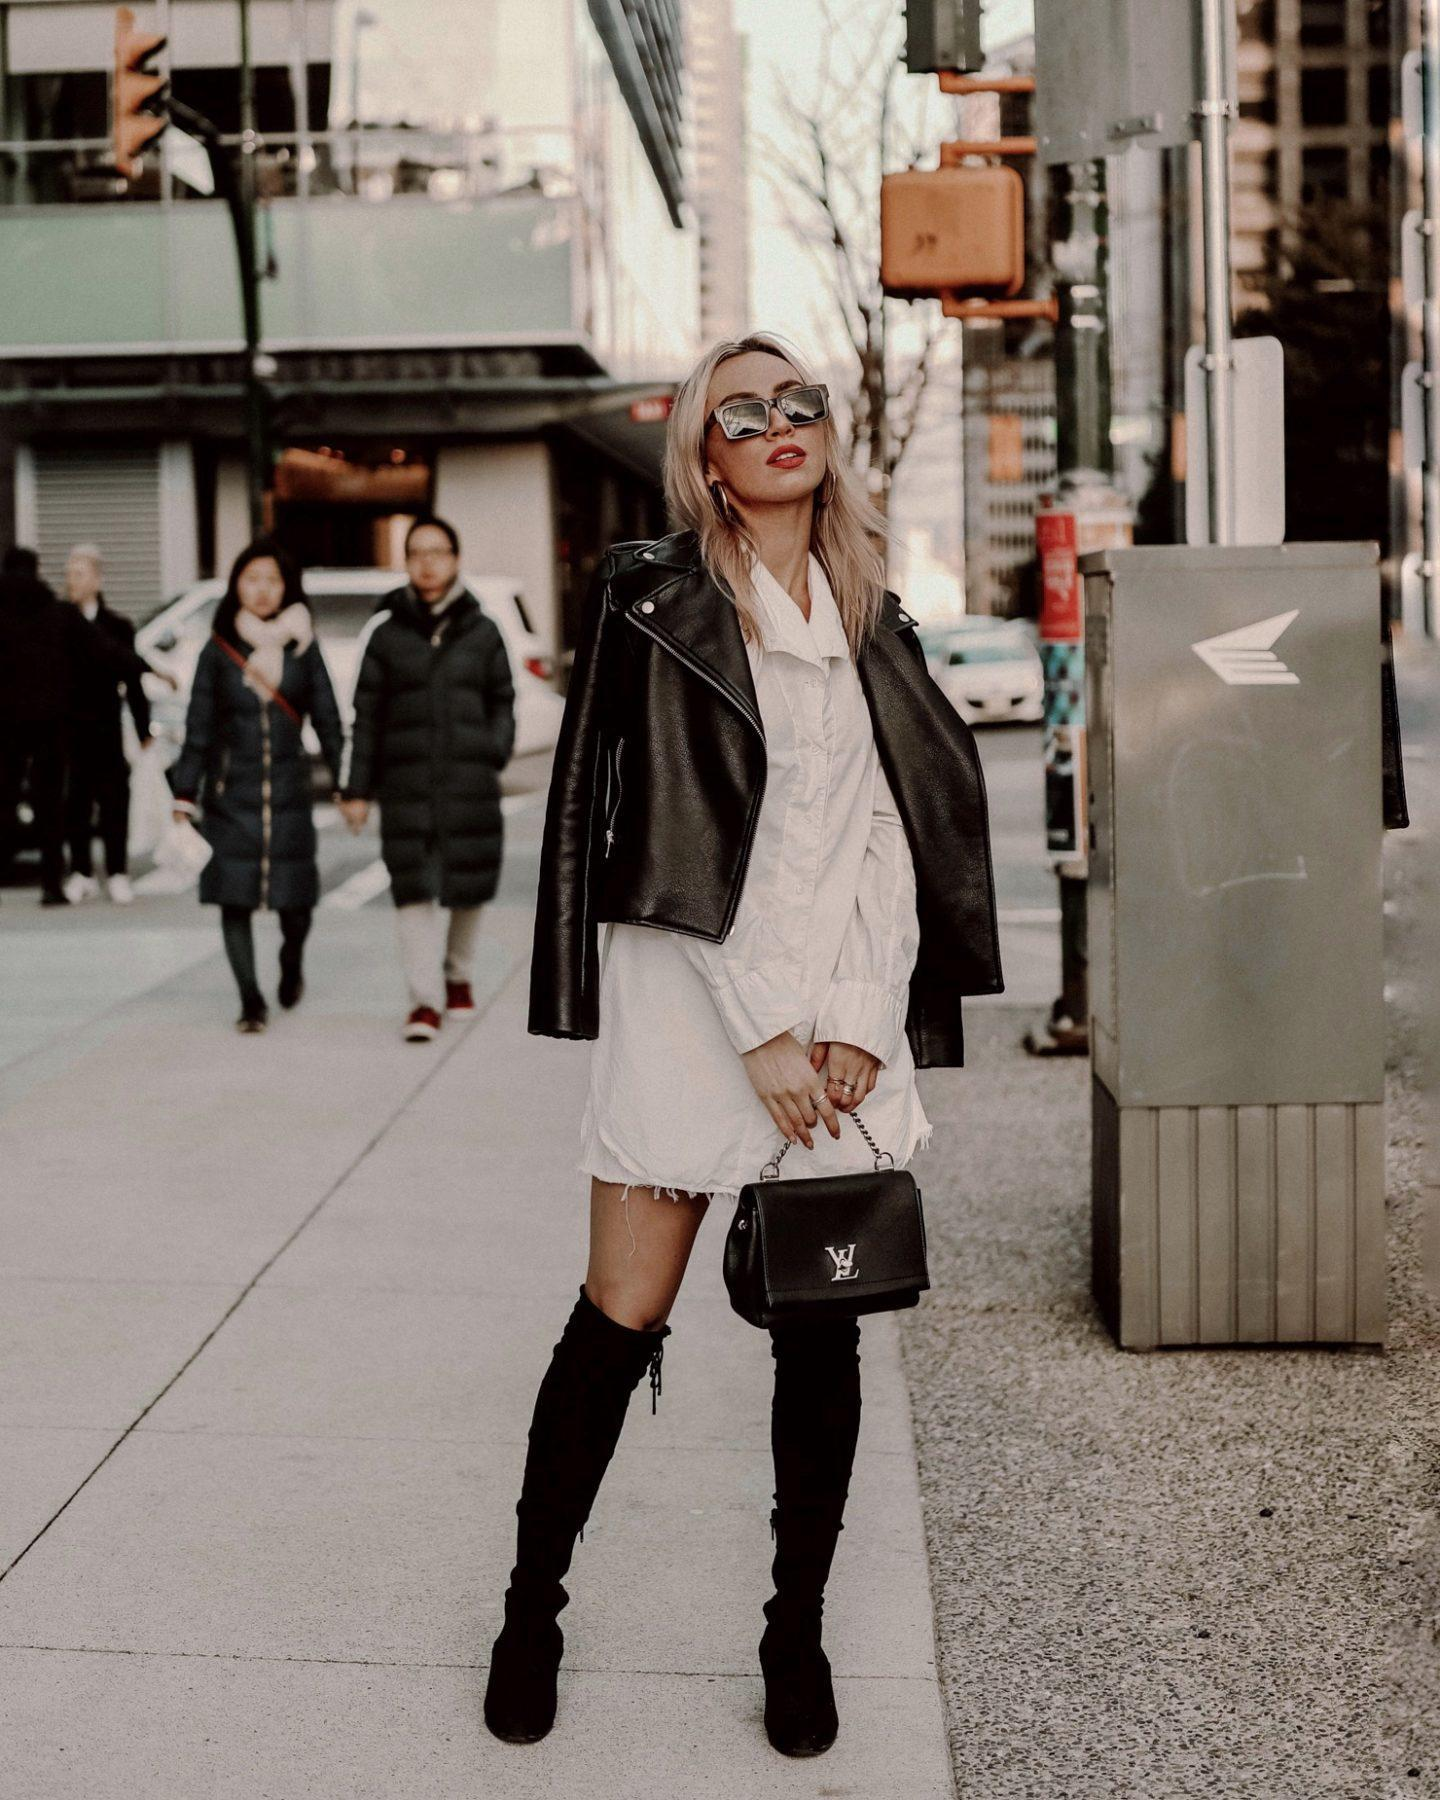 jessica luxe blogger sunglasses jacket dress bag shoes fall outfits leather jacket shirt dress suede boots louis vuitton bag